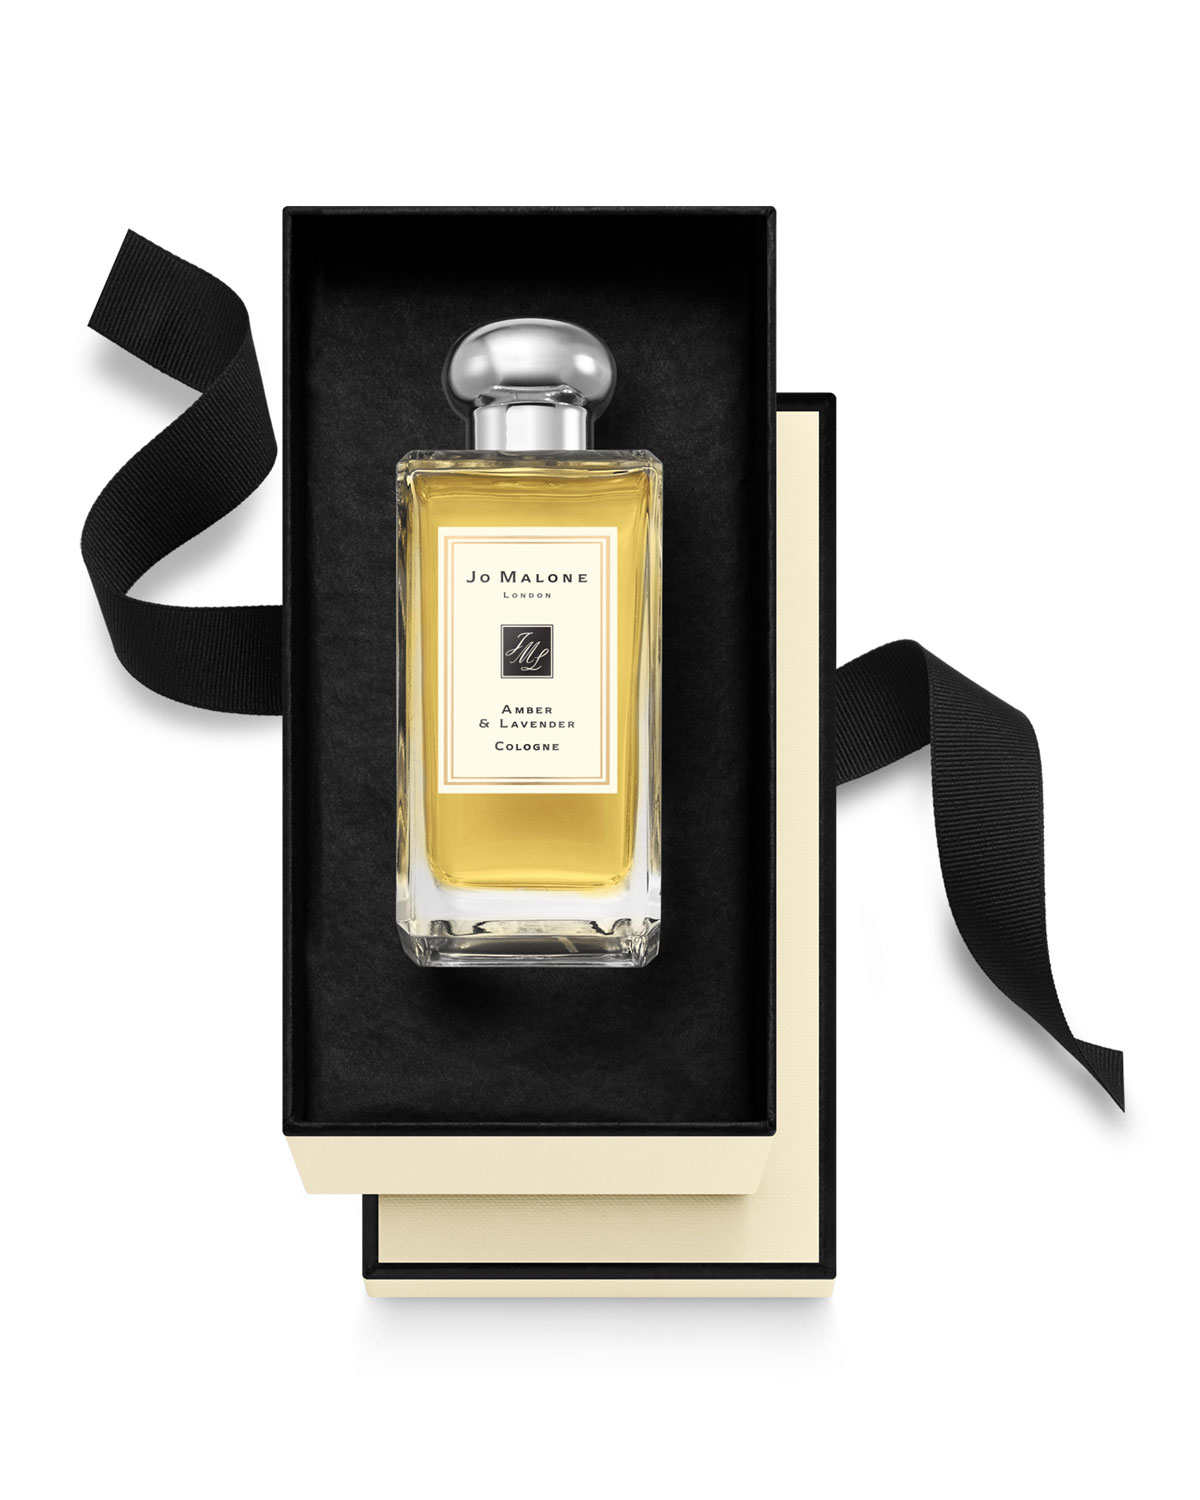 Jo Malone London 3.4 oz. Amber & Lavender Cologne